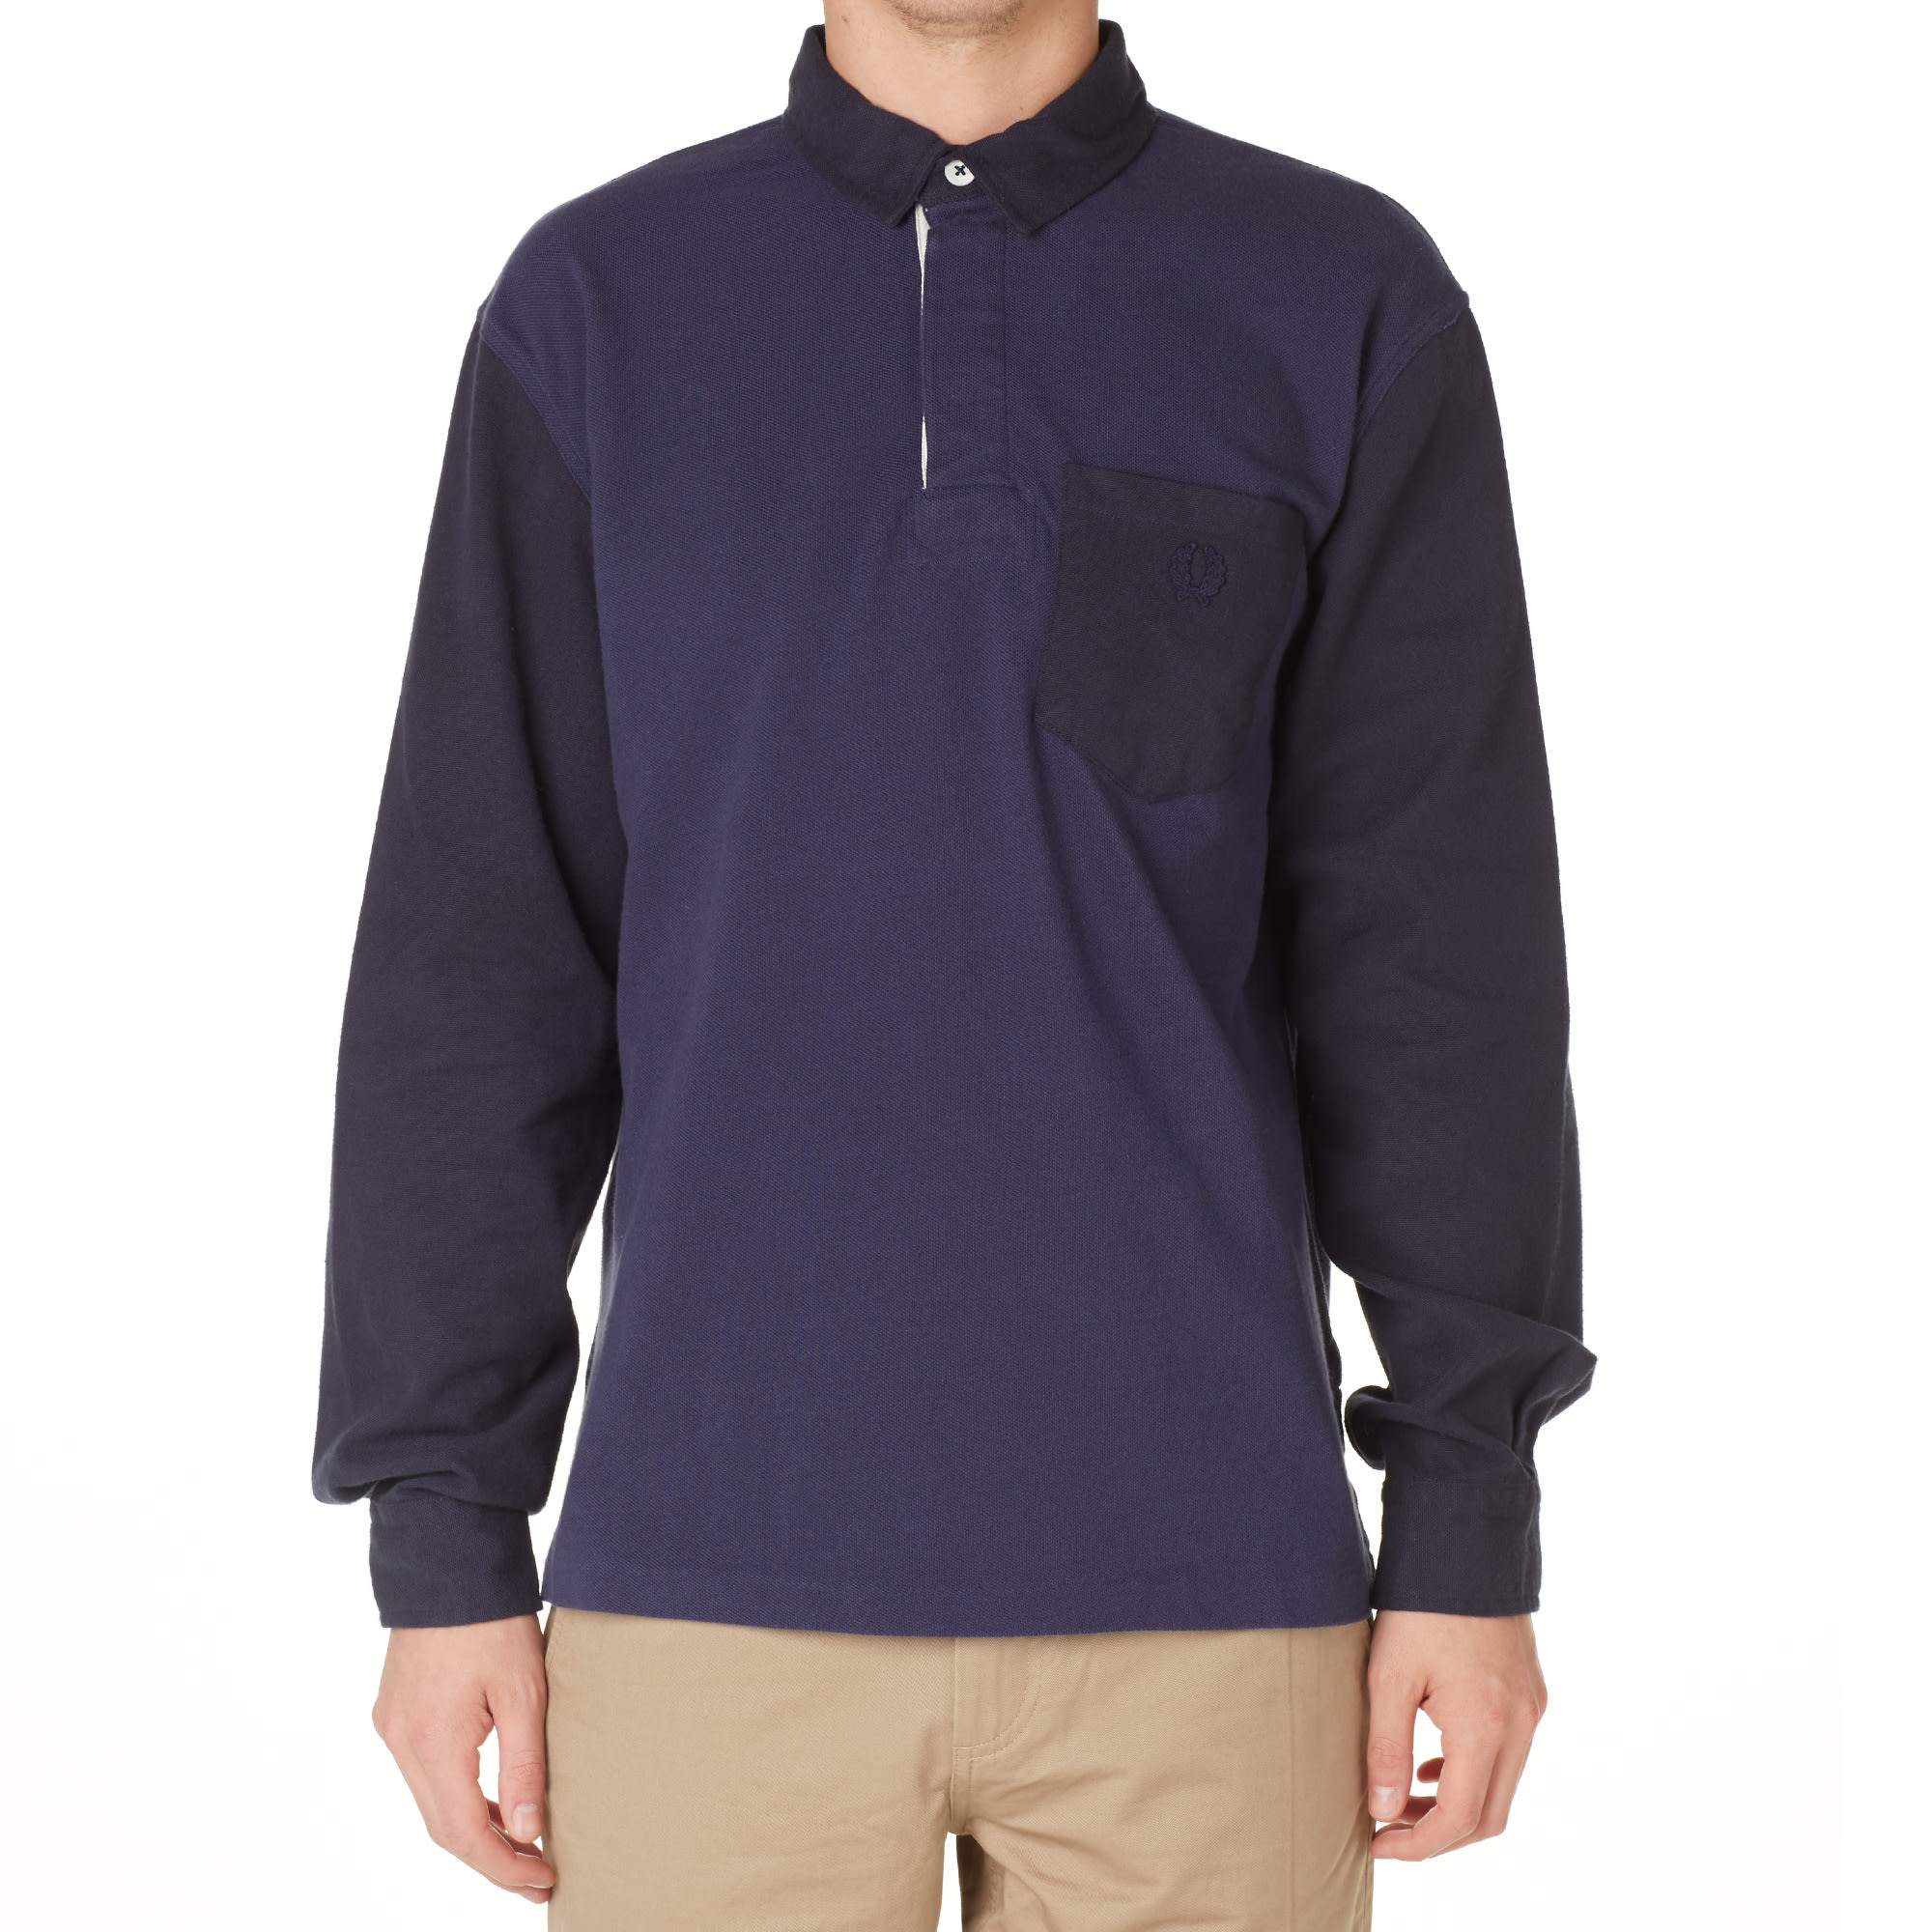 447981e53641 Fred Perry x Nigel Cabourn Football Pique Polo French Navy